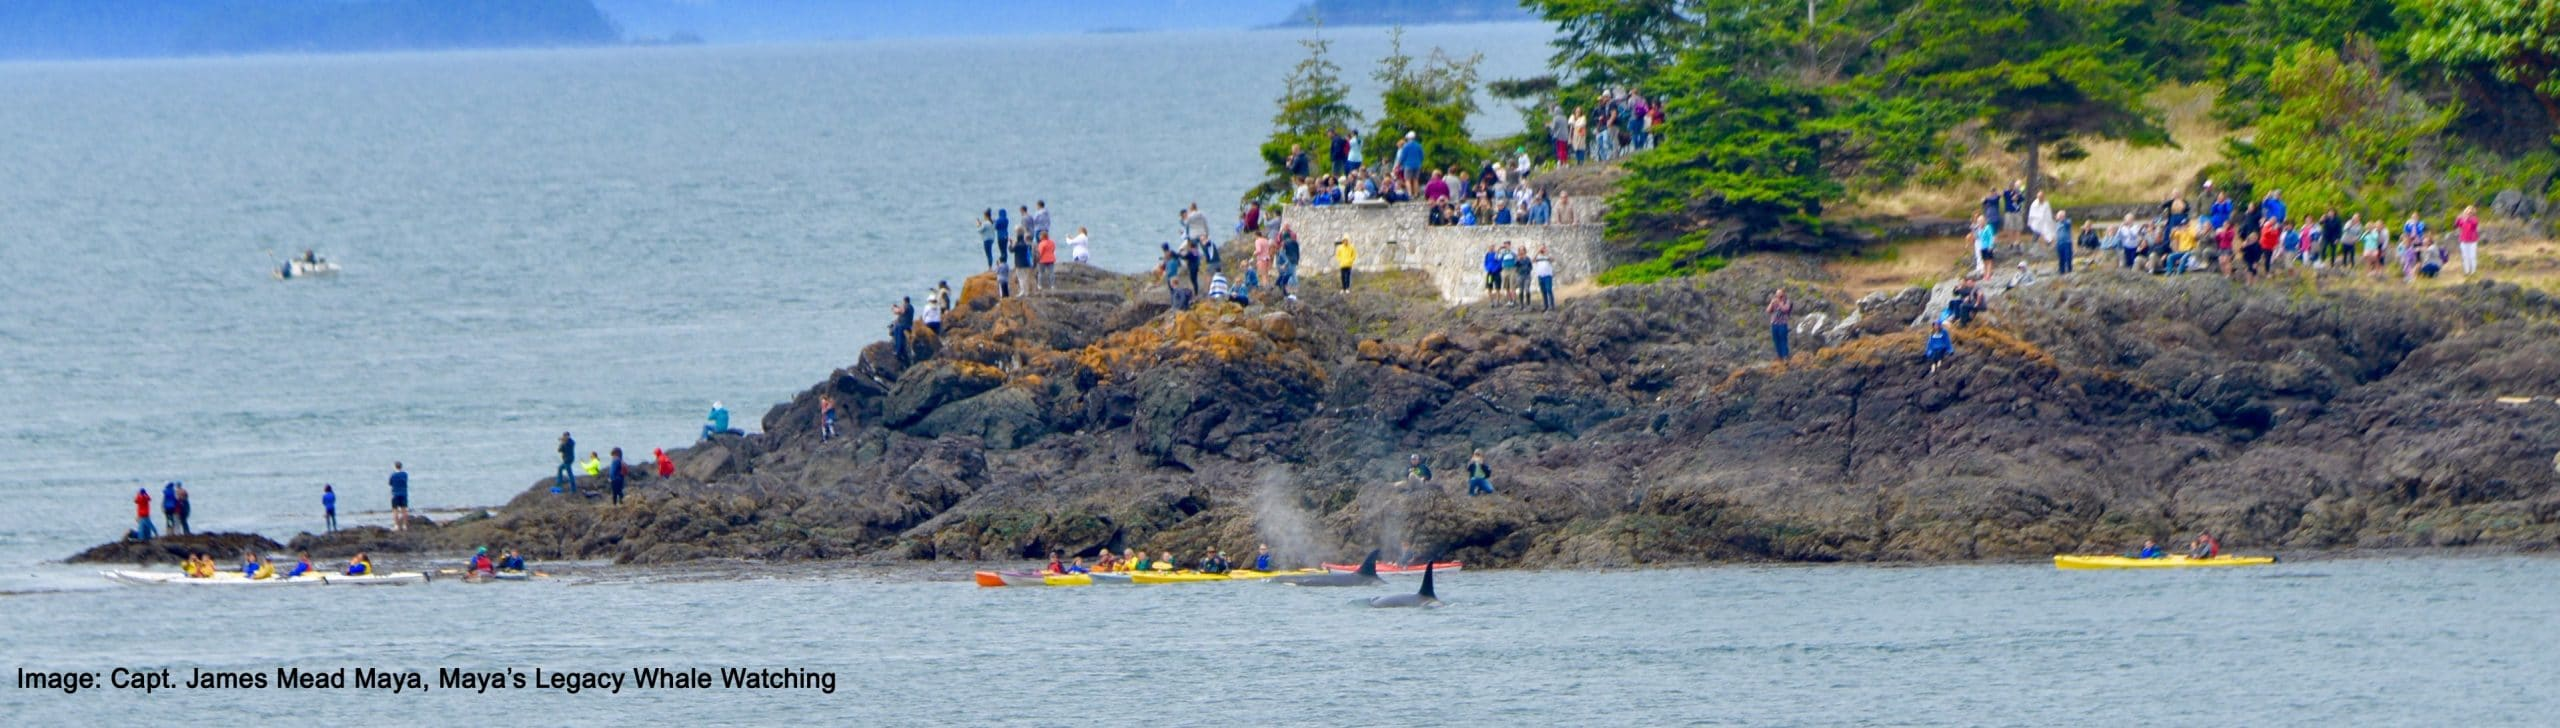 Lime Kiln/Whale Watch Park Southern Resident orcas